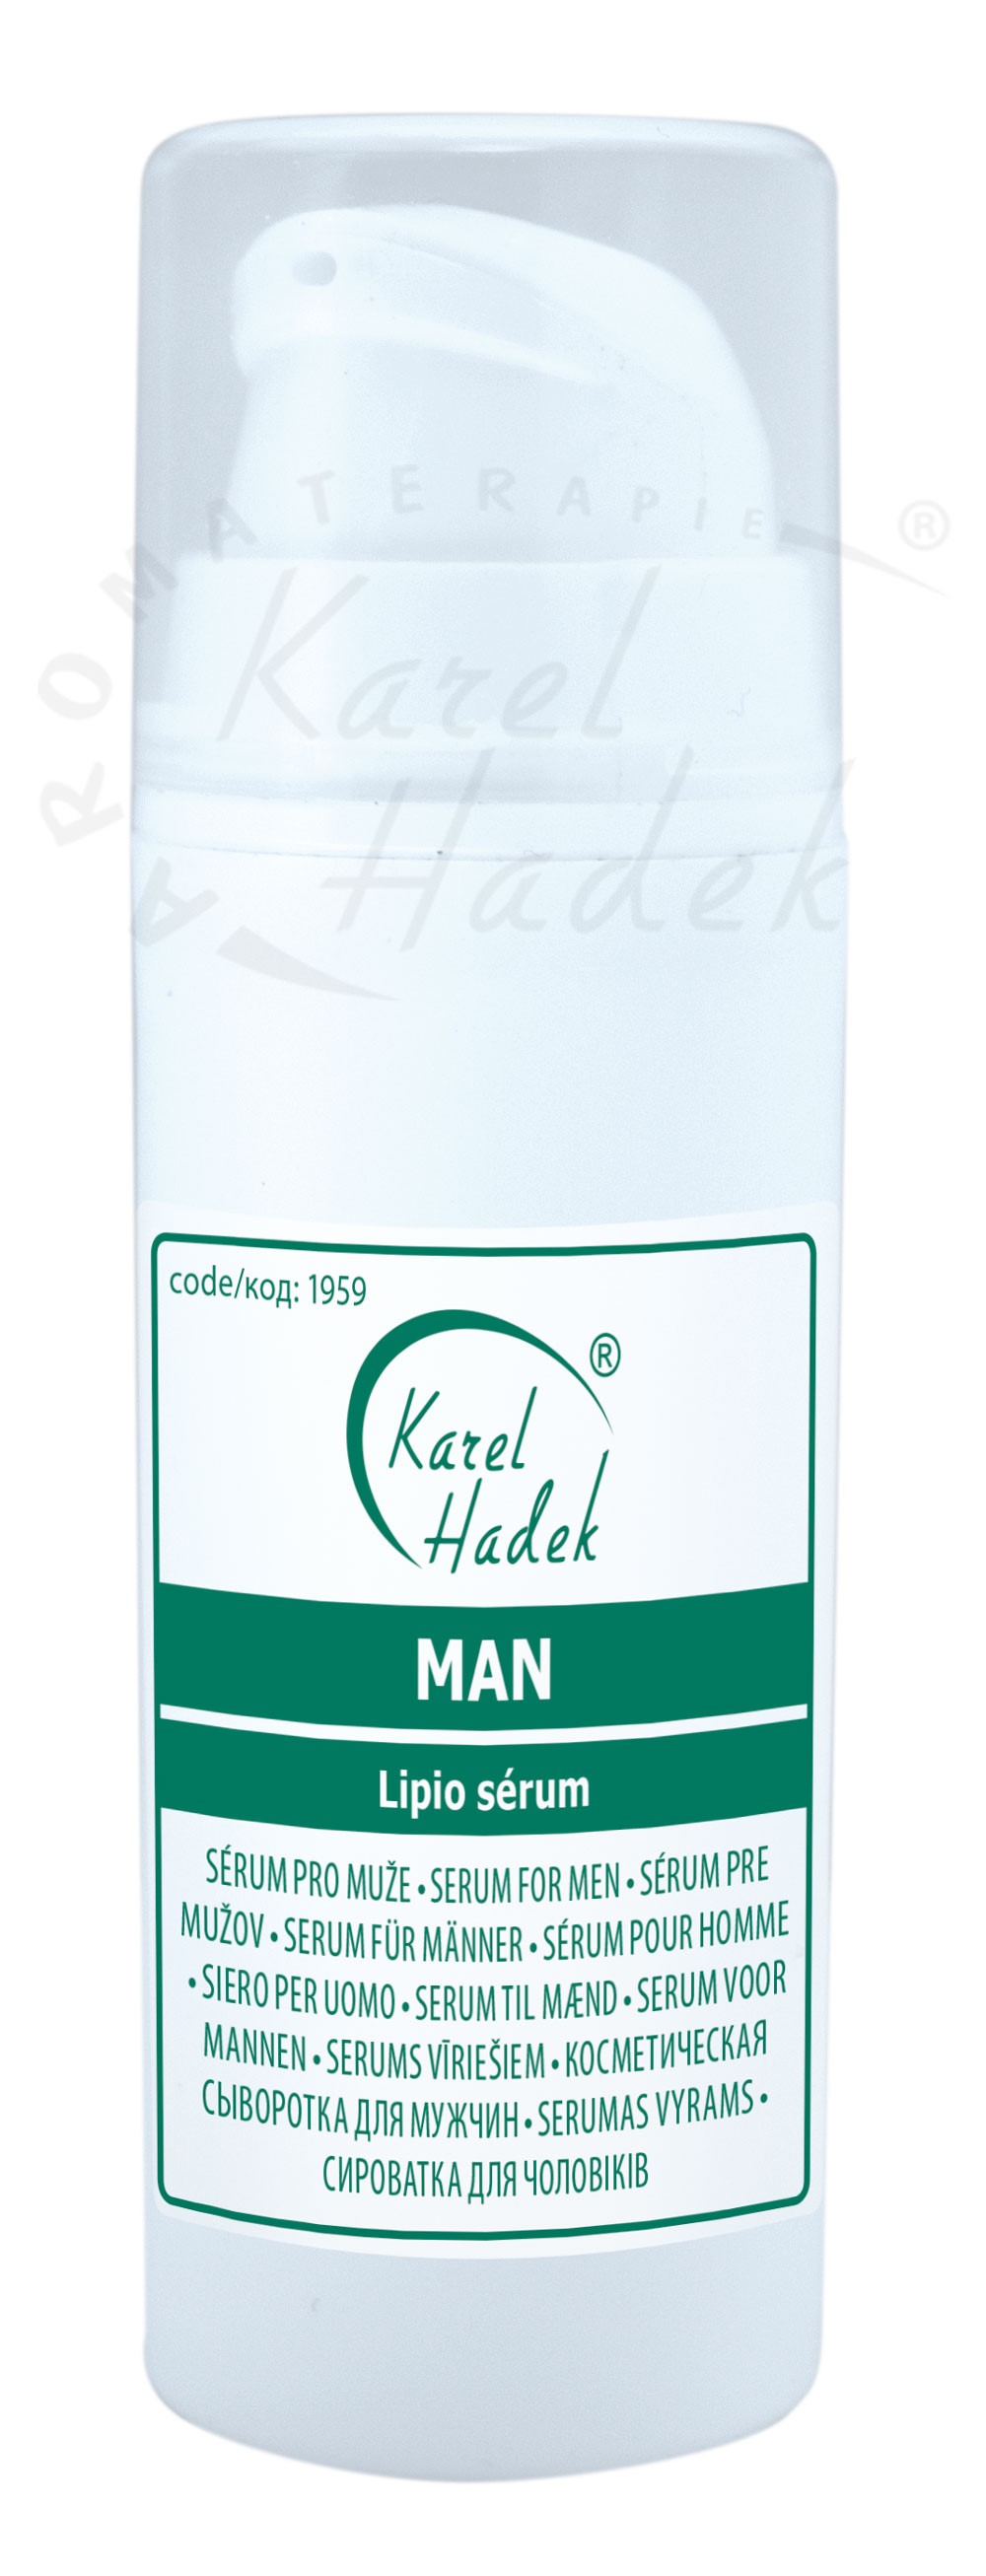 KH - MAN LIPIO SÉRUM 30 ml